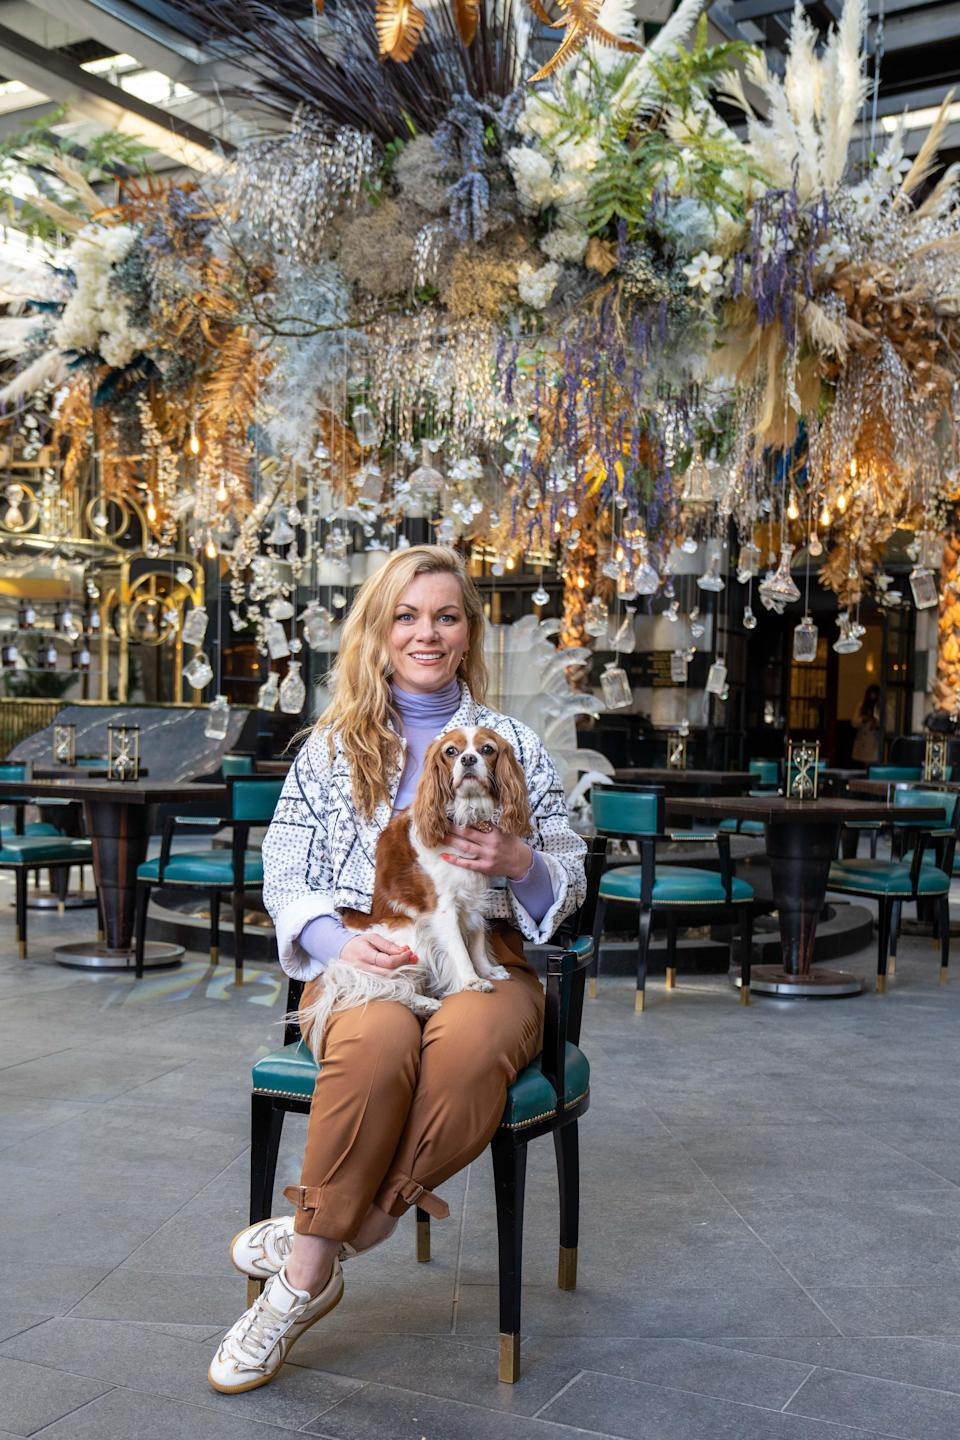 Creator Meredith O'Shaughnessy and her dog Phoebe on the terraceCasey Gutteridge